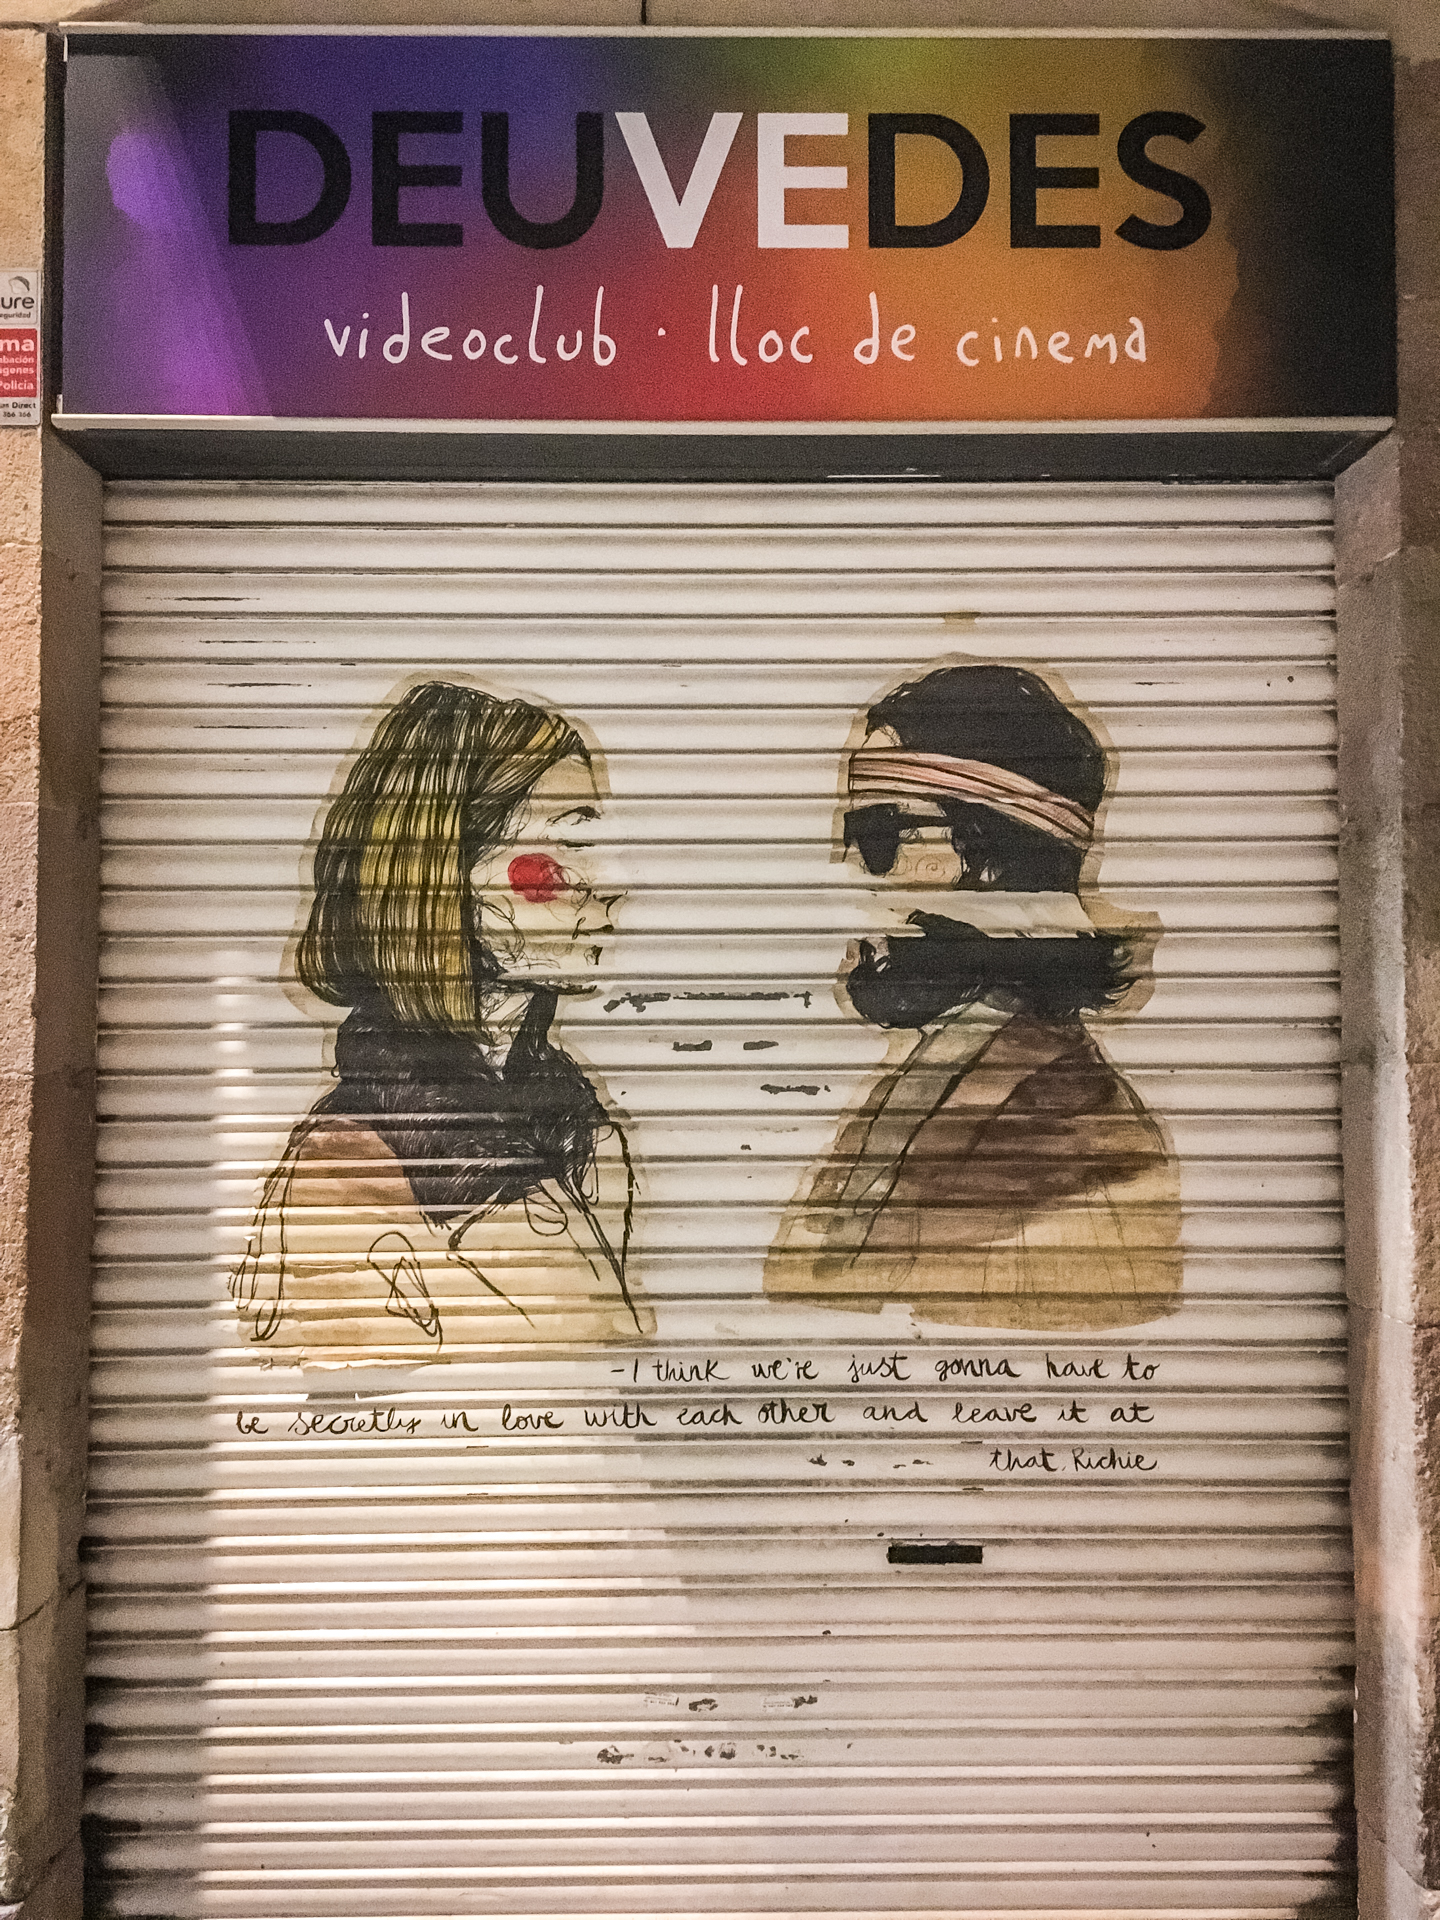 """Pretty much every shop door in the city has been decorated with graffiti of some sort. This one on my street has this scene from one of my favourite movies """"The Royal Tenenbaums""""!"""